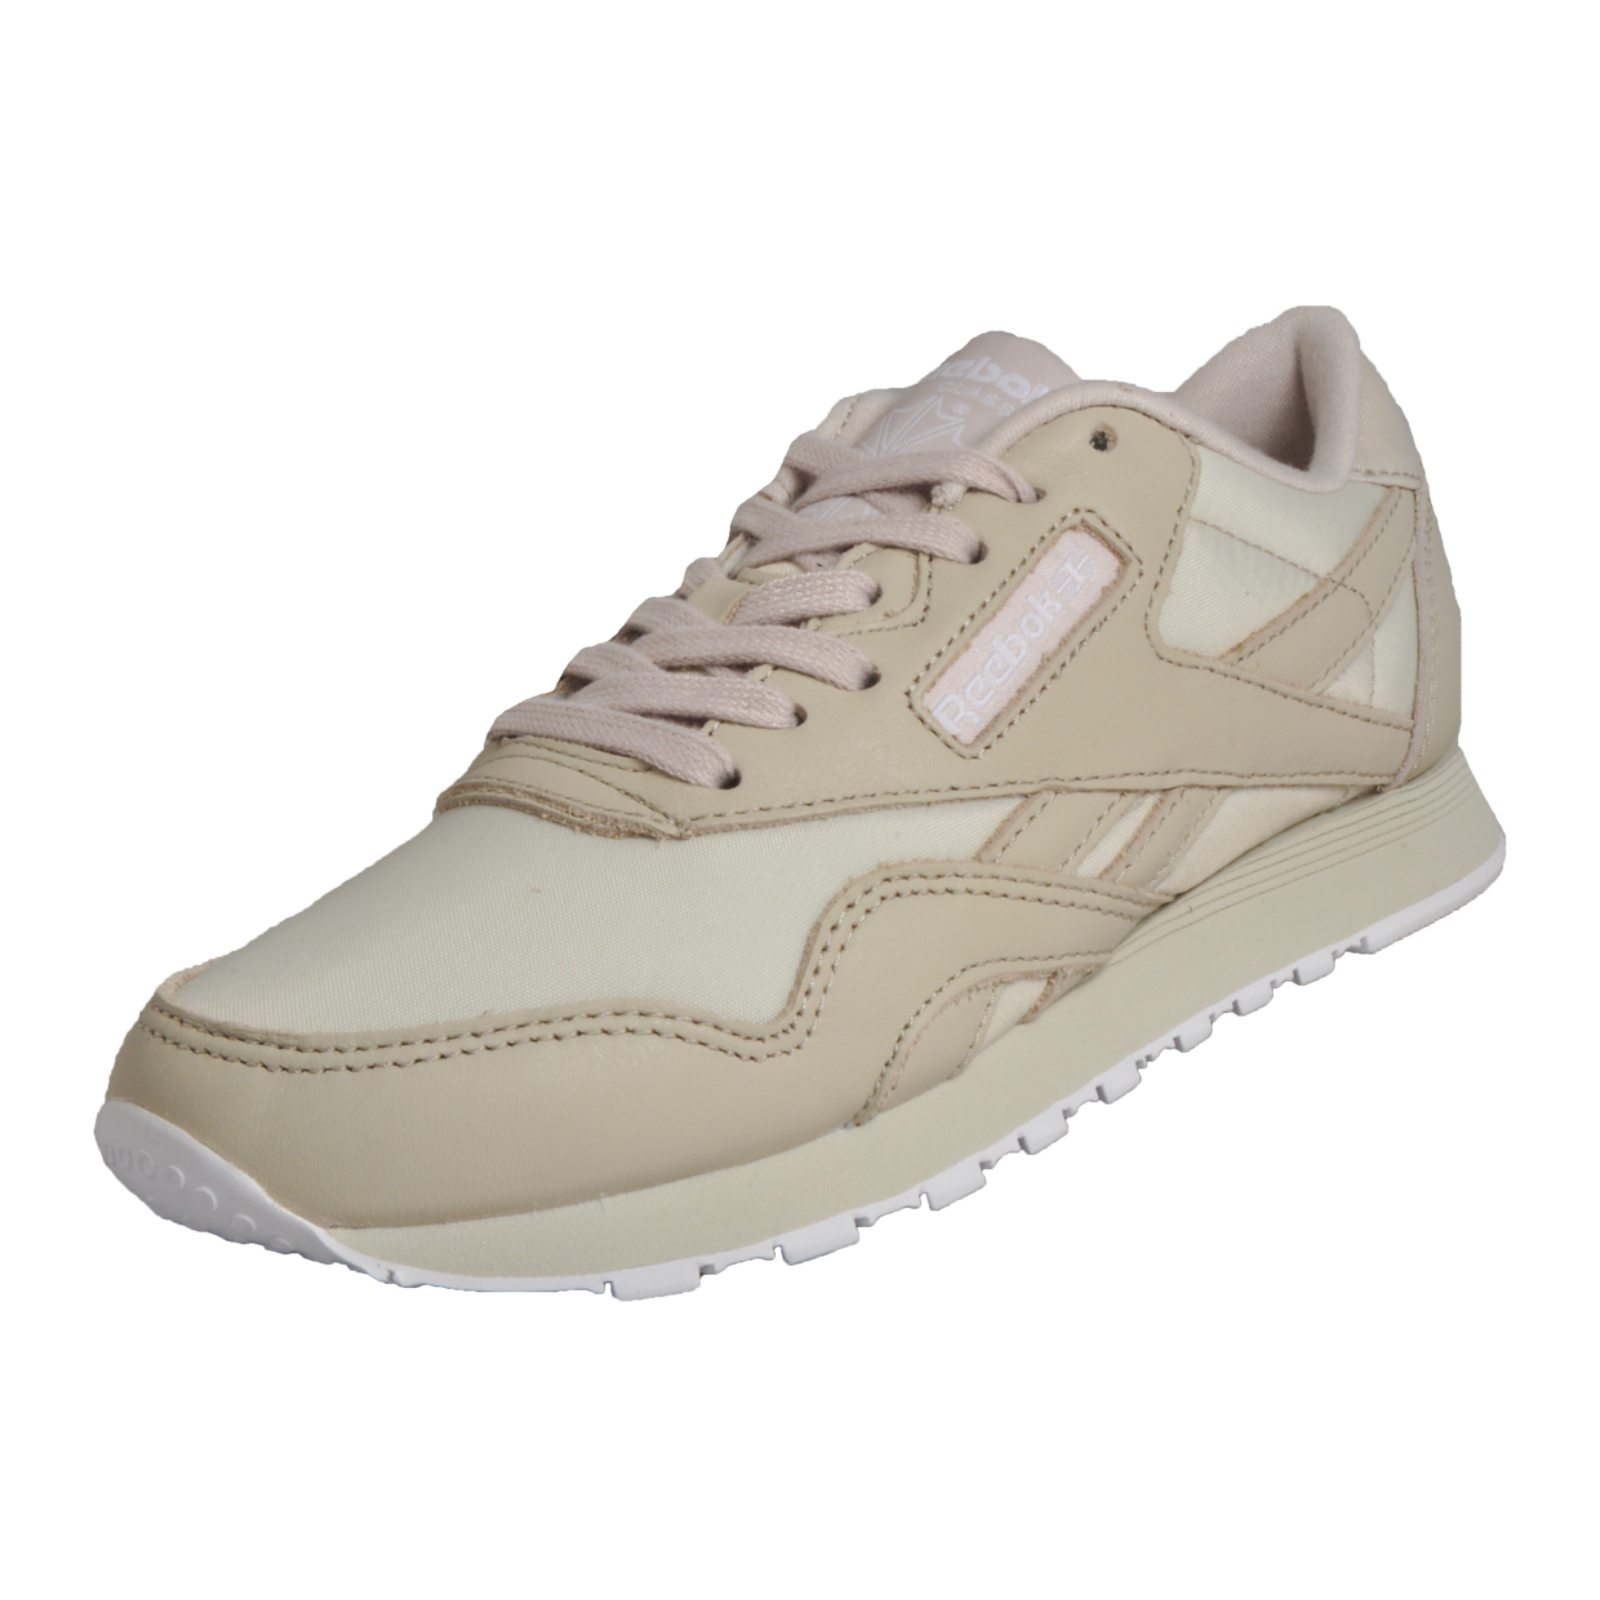 01ae290208f9d2 Details about Reebok Classic CL Nylon PJ Women s Retro Fashion Trainers  Cream